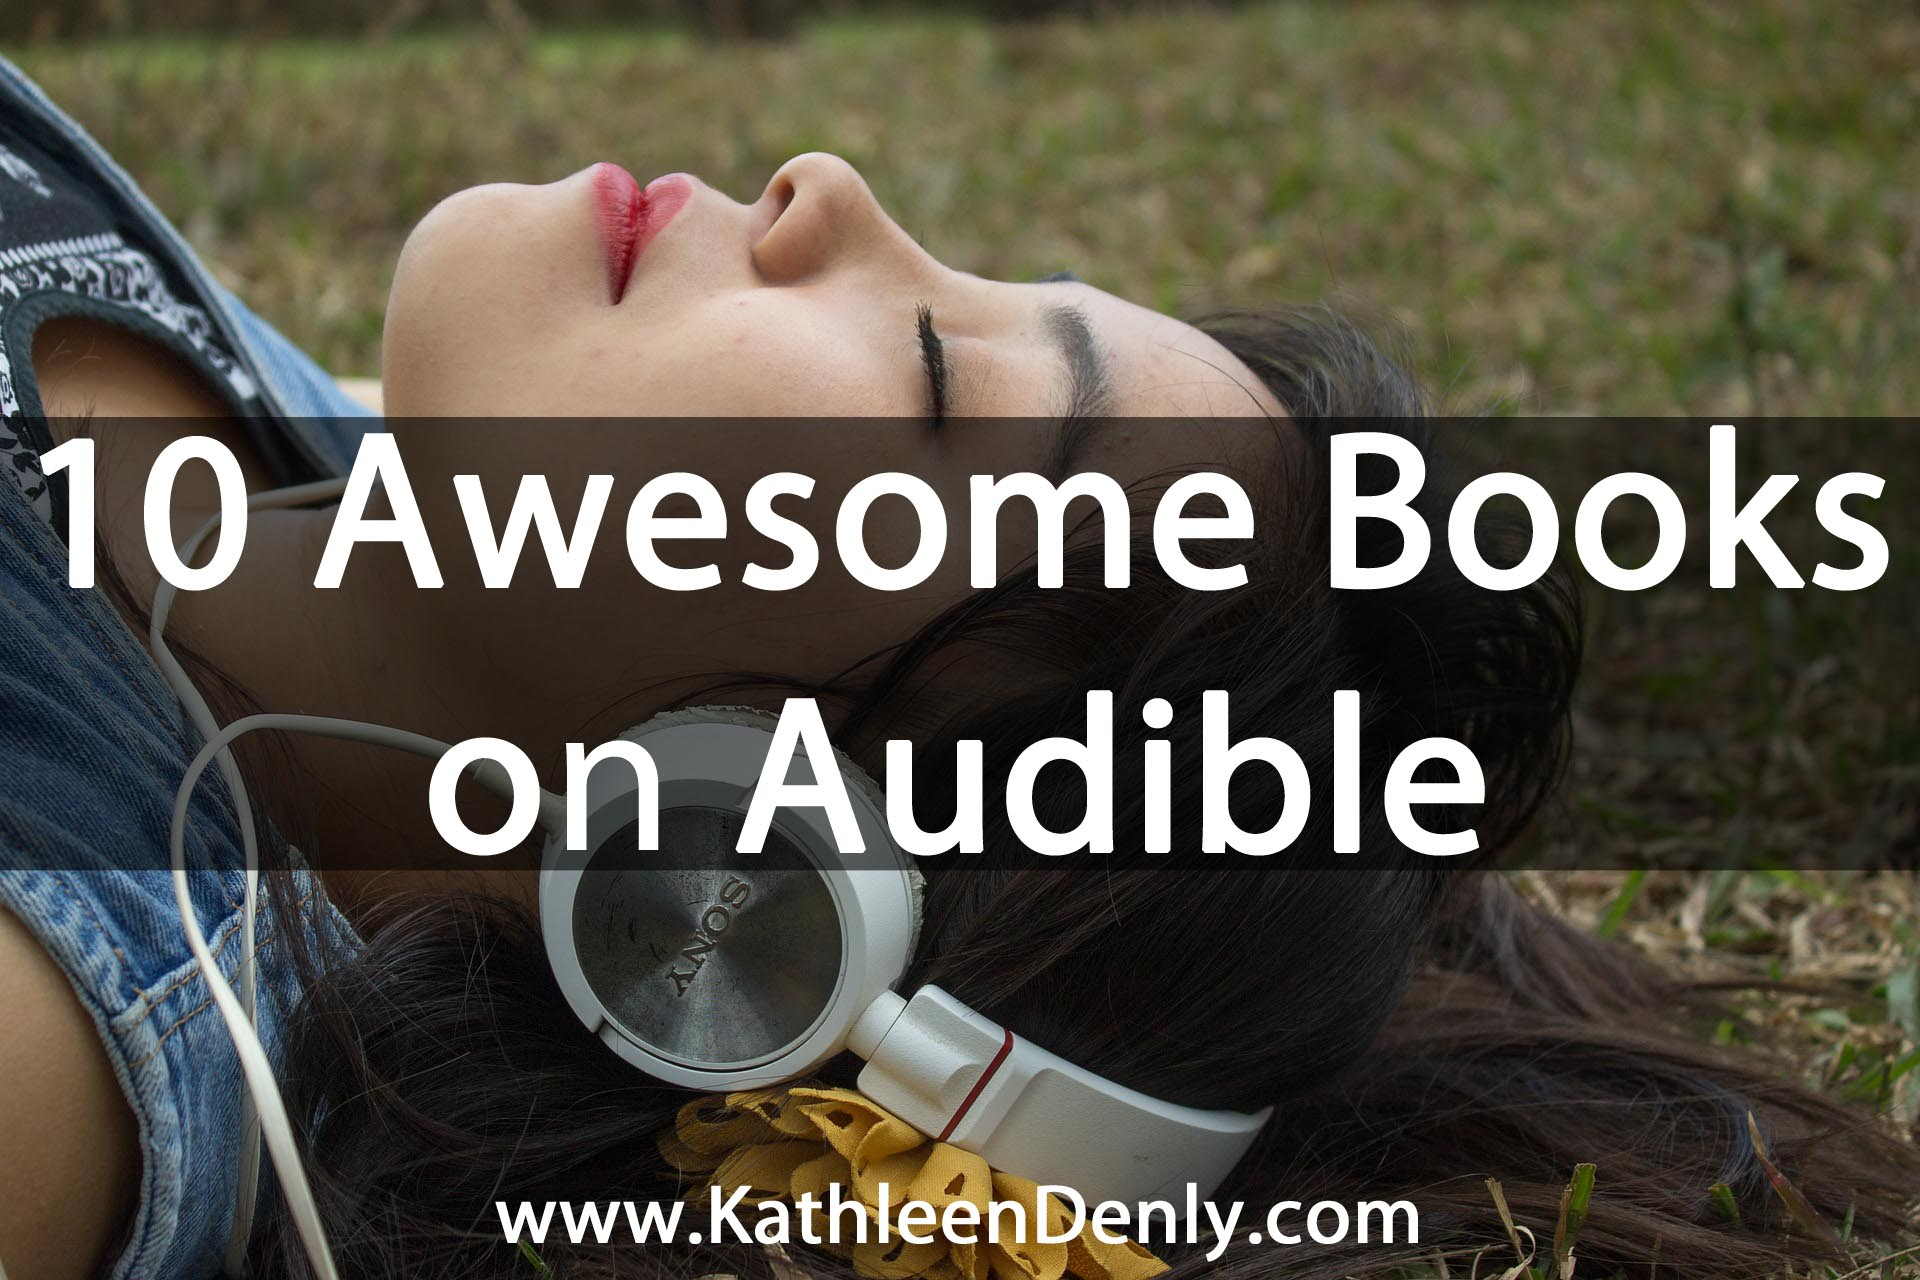 10 Awesome Books on Audible